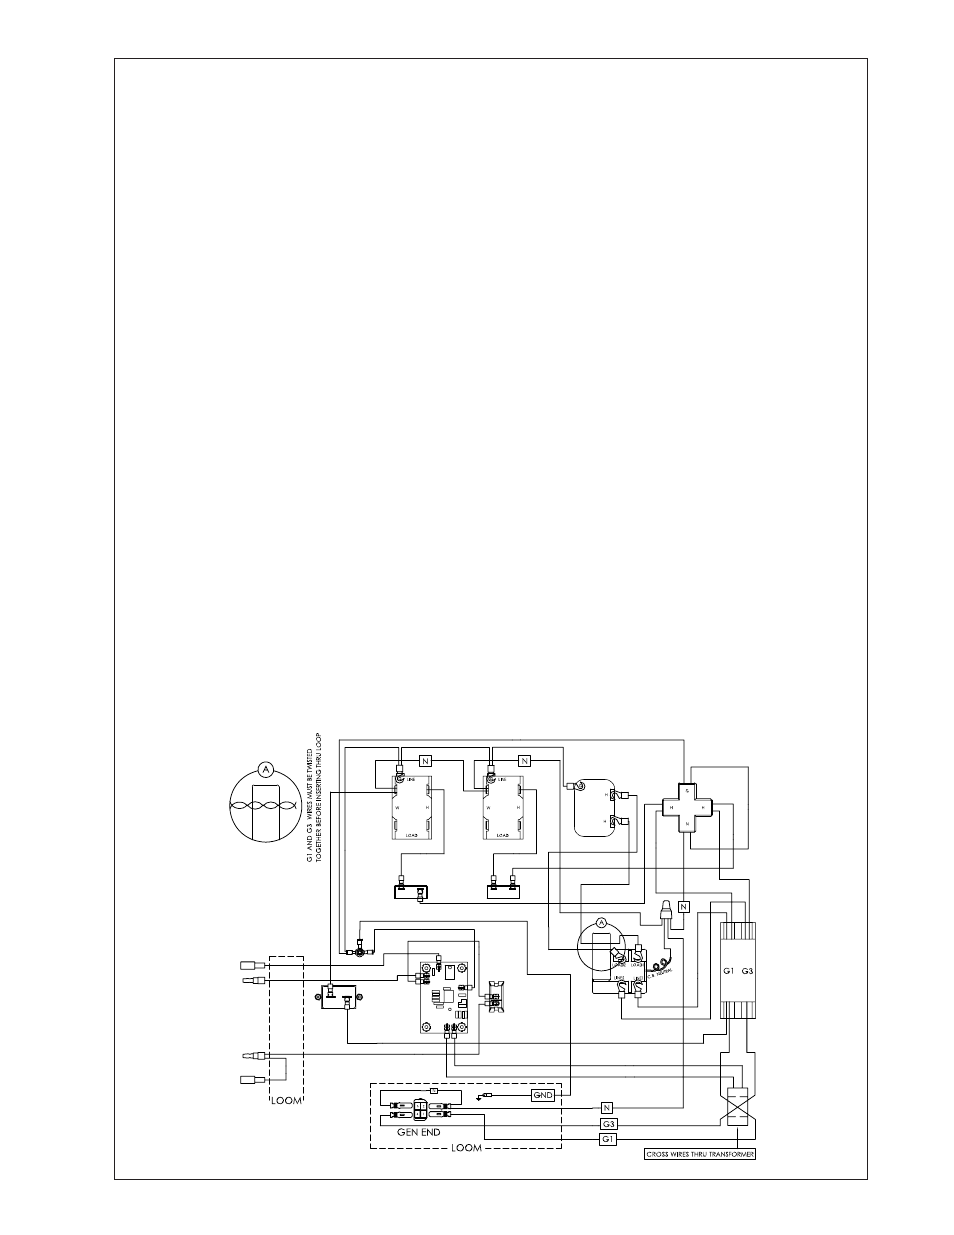 hight resolution of wiring diagram troubleshooting hints winco wc10000ve user manual page 11 12